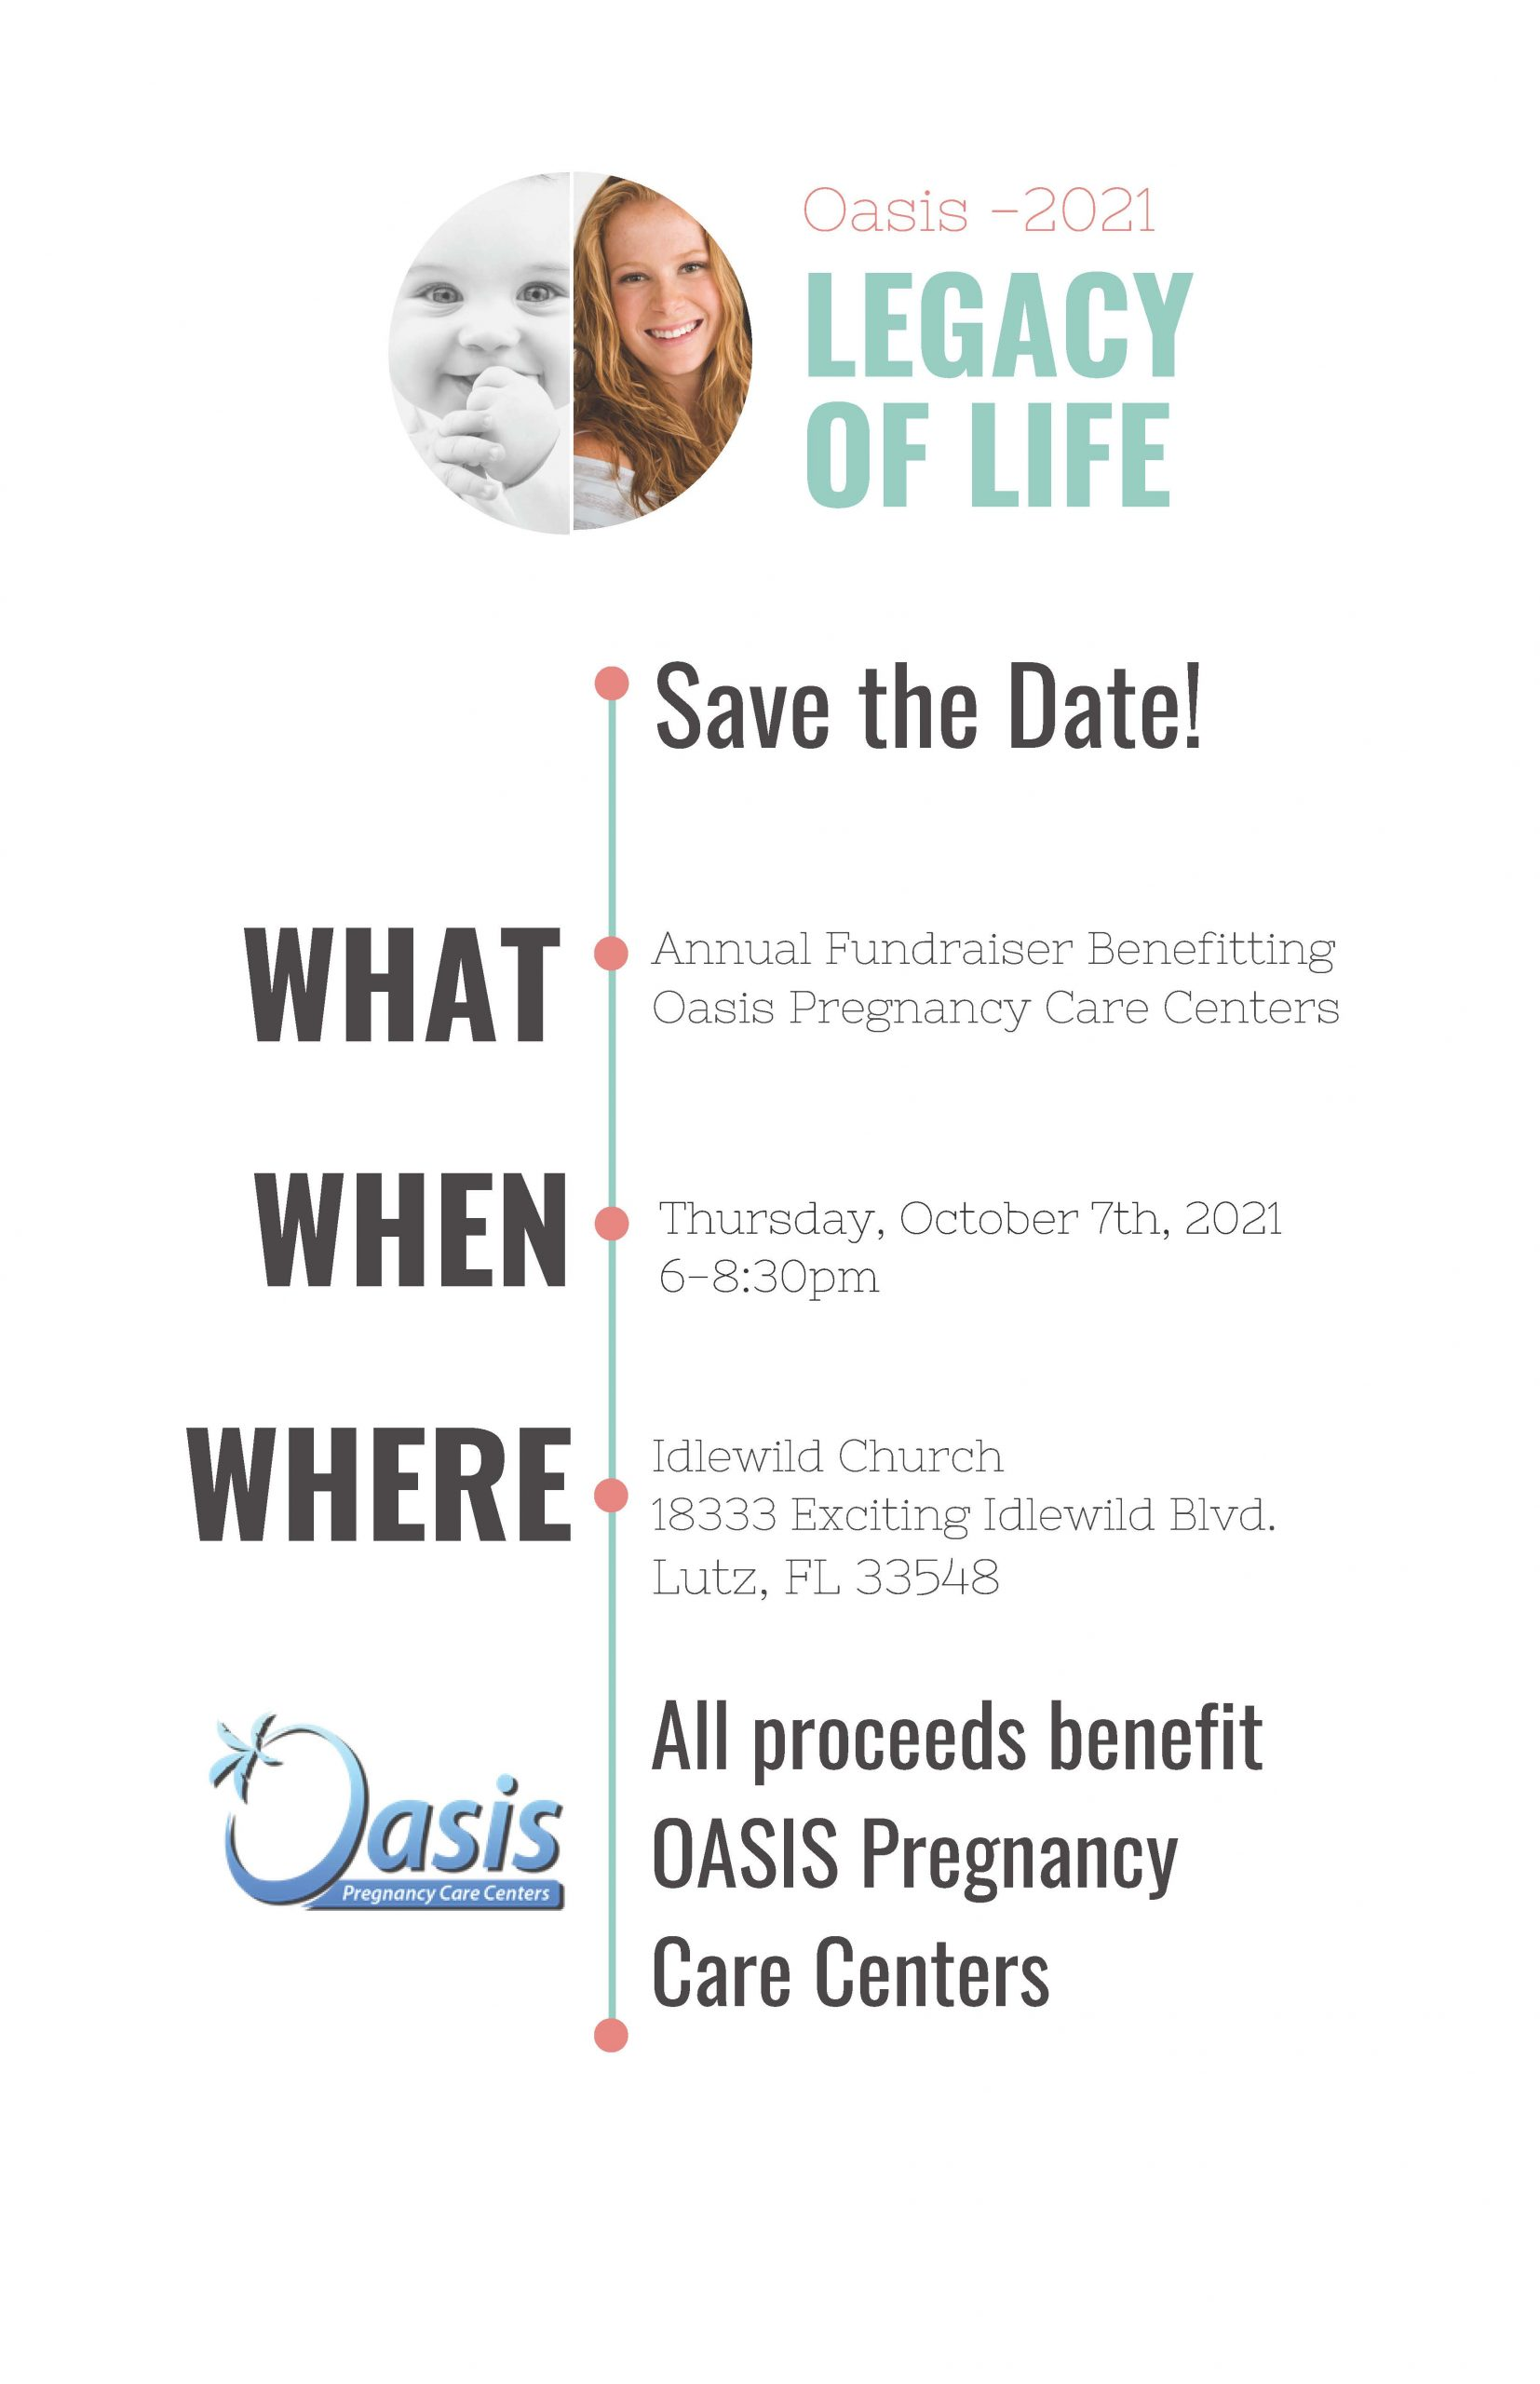 Full Save The Date Info Page for 2021 Oasis Legacy Life Event